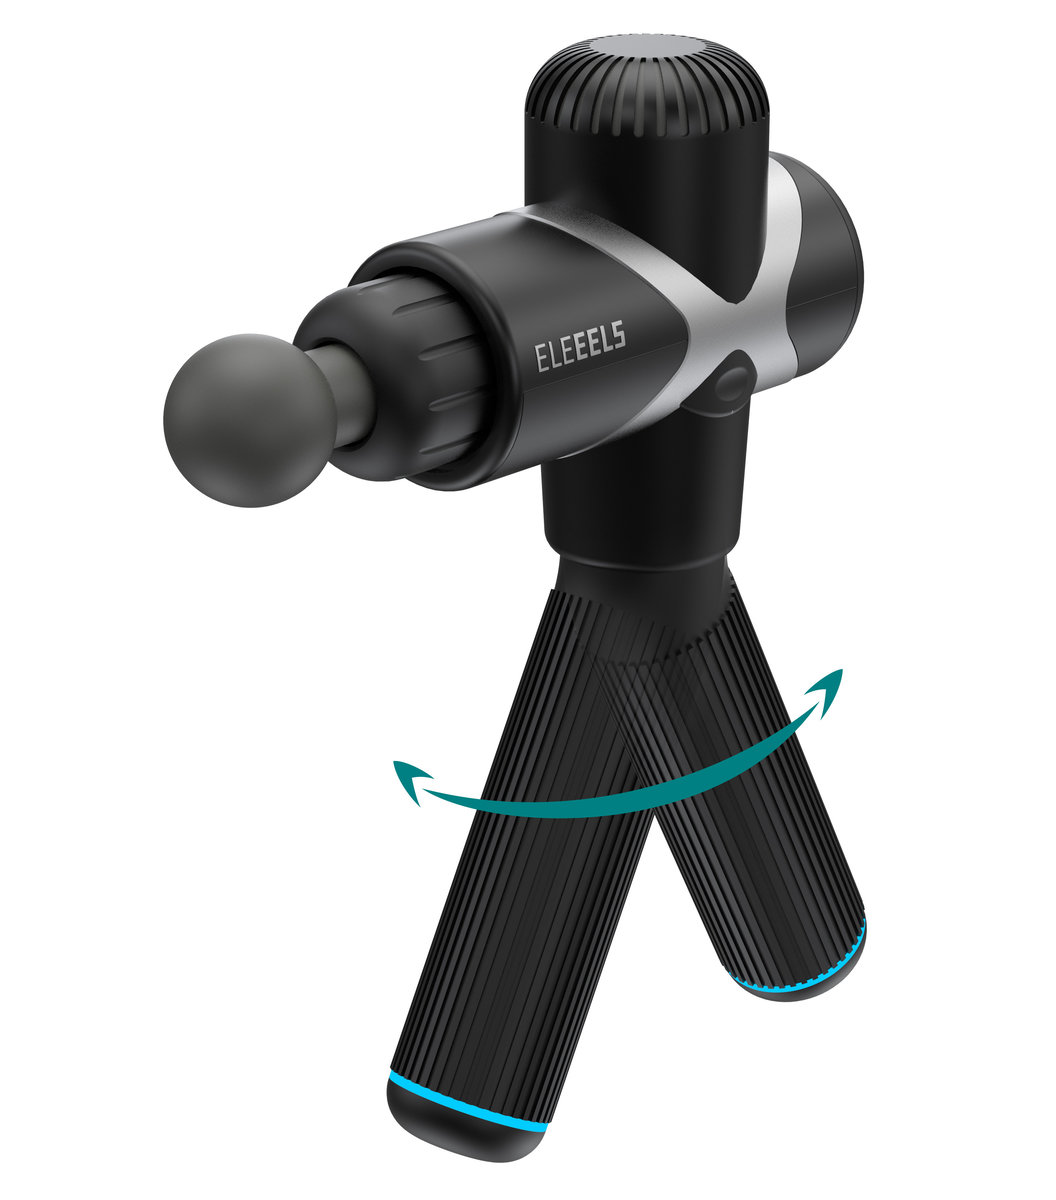 X1T Percussive Massage Gun [Metallic Black] (Present Receipt to Receive Complimentary Carrying Case)